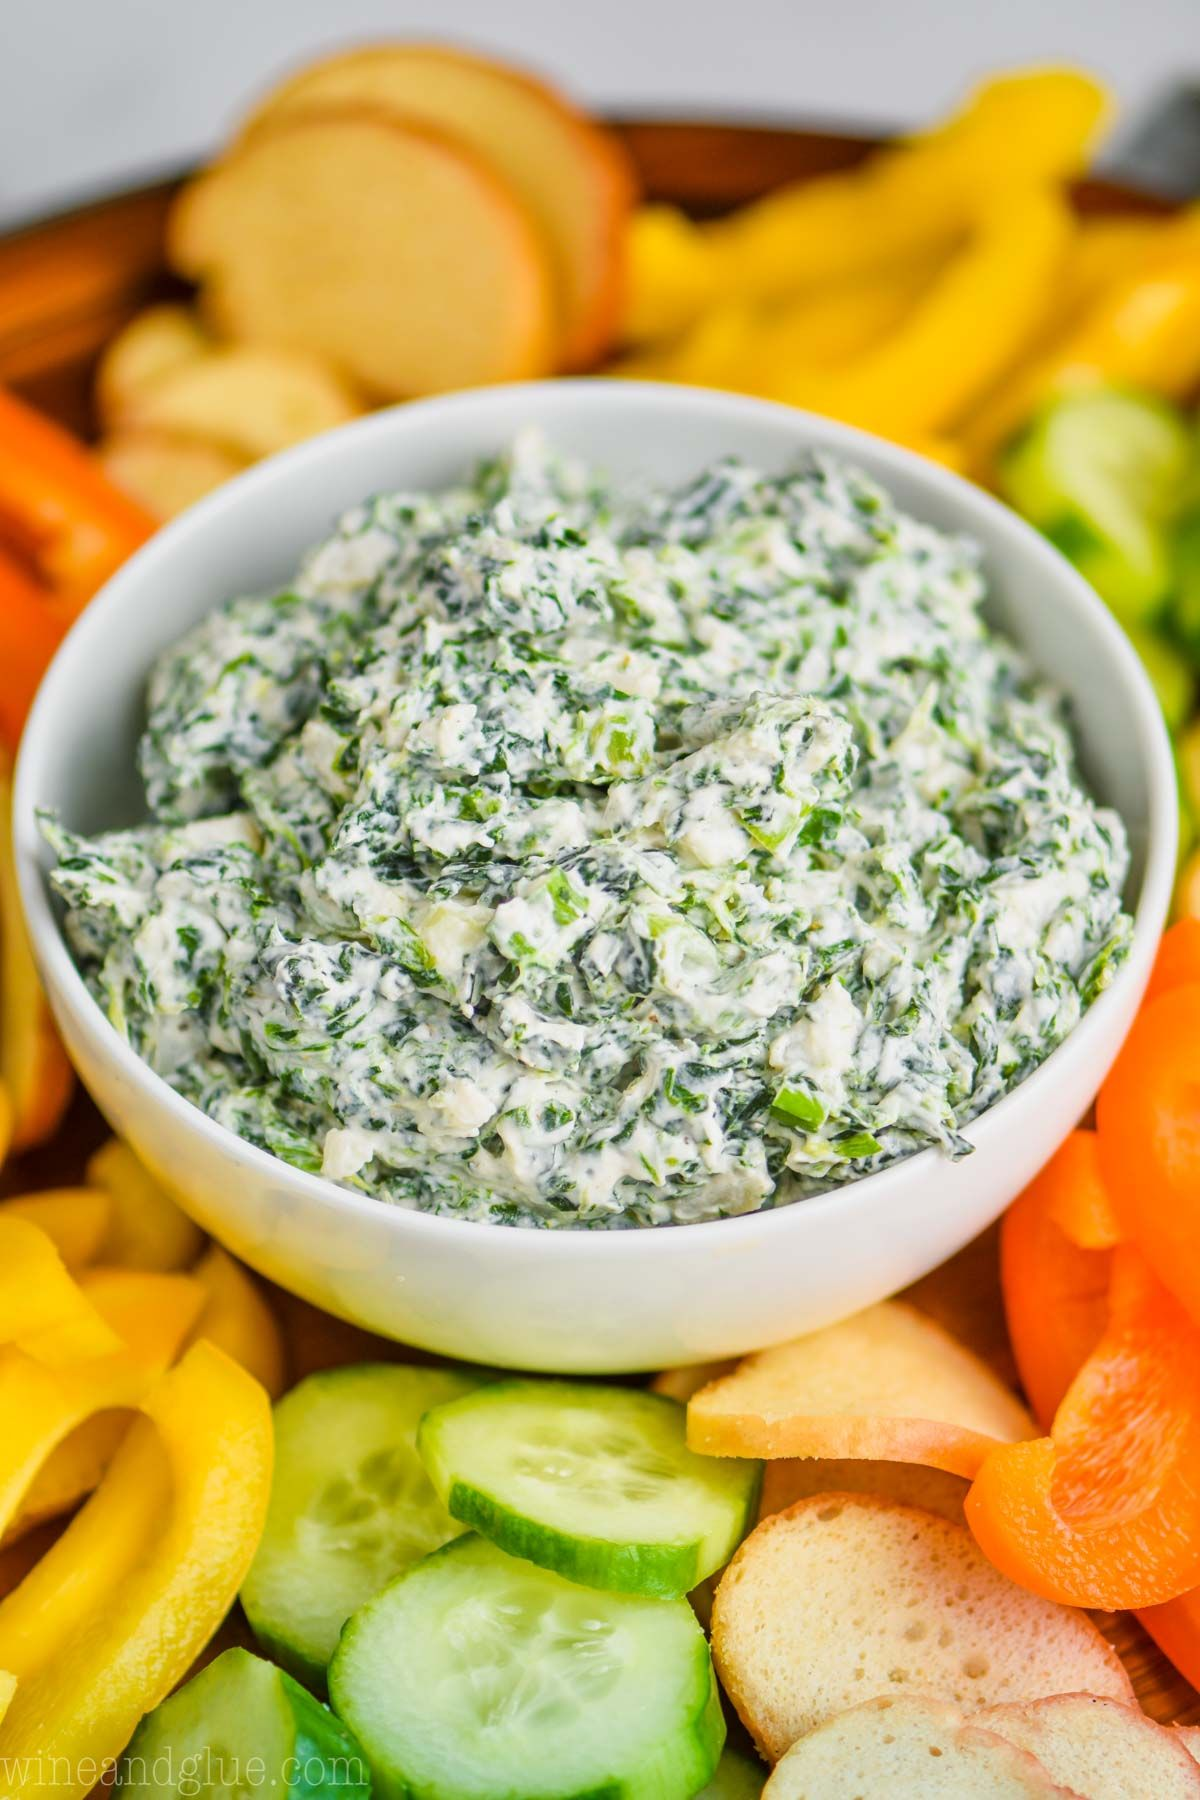 This Spinach Dip Recipe Is Super Easy To Make And Is So Good This Cold Spinach Dip Recipe Made With Sour Crea Spinach Dip Recipe Spinach Dip Spinach Dip Cold